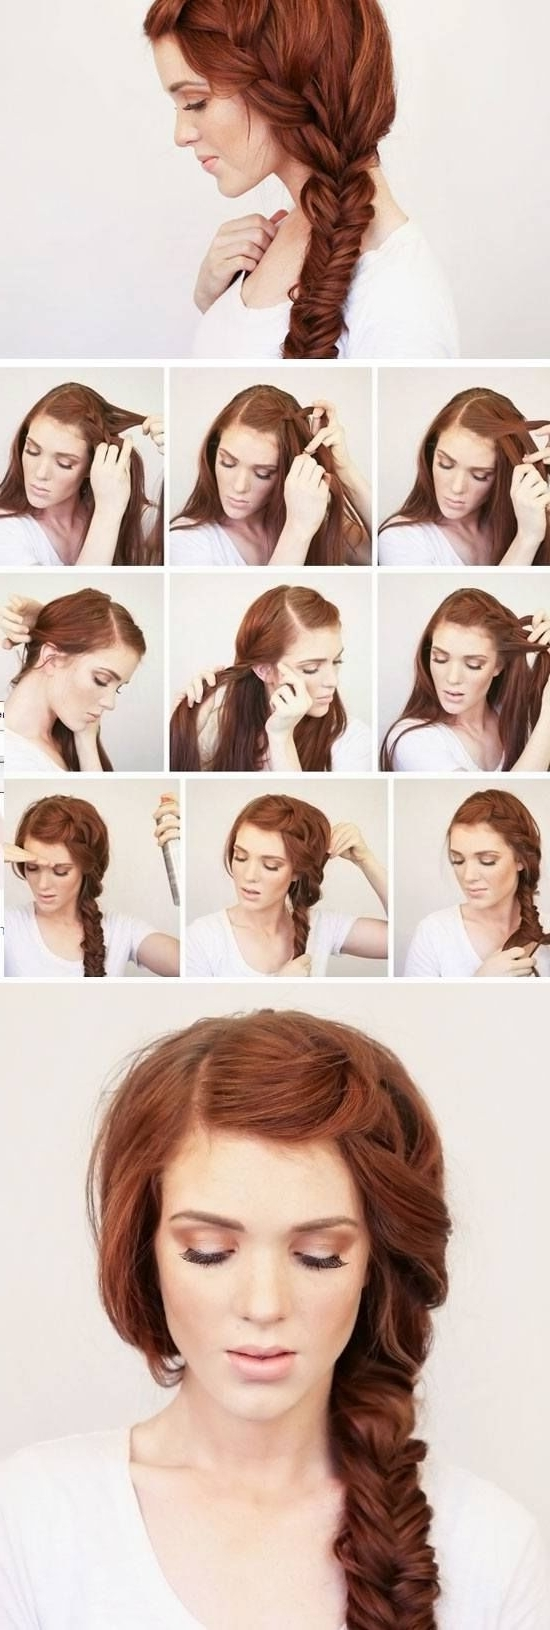 Bohemian Side Braid Pictures, Photos, And Images For Facebook In Newest Bohemian Side Braid Hairstyles (View 2 of 15)